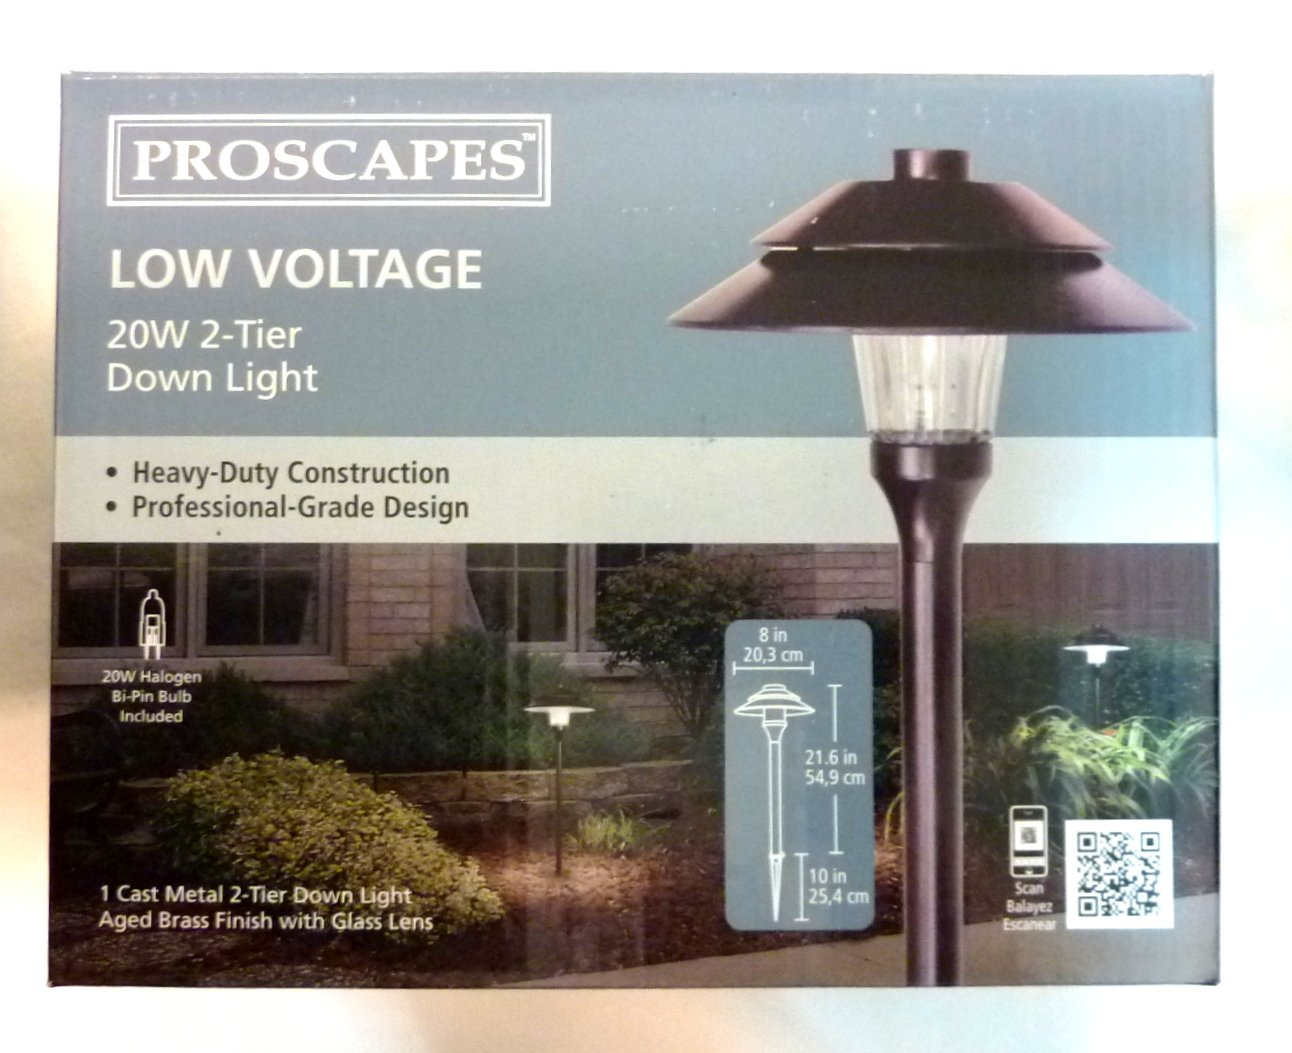 Amazon.com  4 Pack Malibu / Proscapes 8608-0101-04 2-Tier Down Lights for Yard Landscapes Paths 20 Watts in Aged Brass Finish BY MALIBU DISTRIBUTION ... & Amazon.com : 4 Pack Malibu / Proscapes 8608-0101-04 2-Tier Down ...